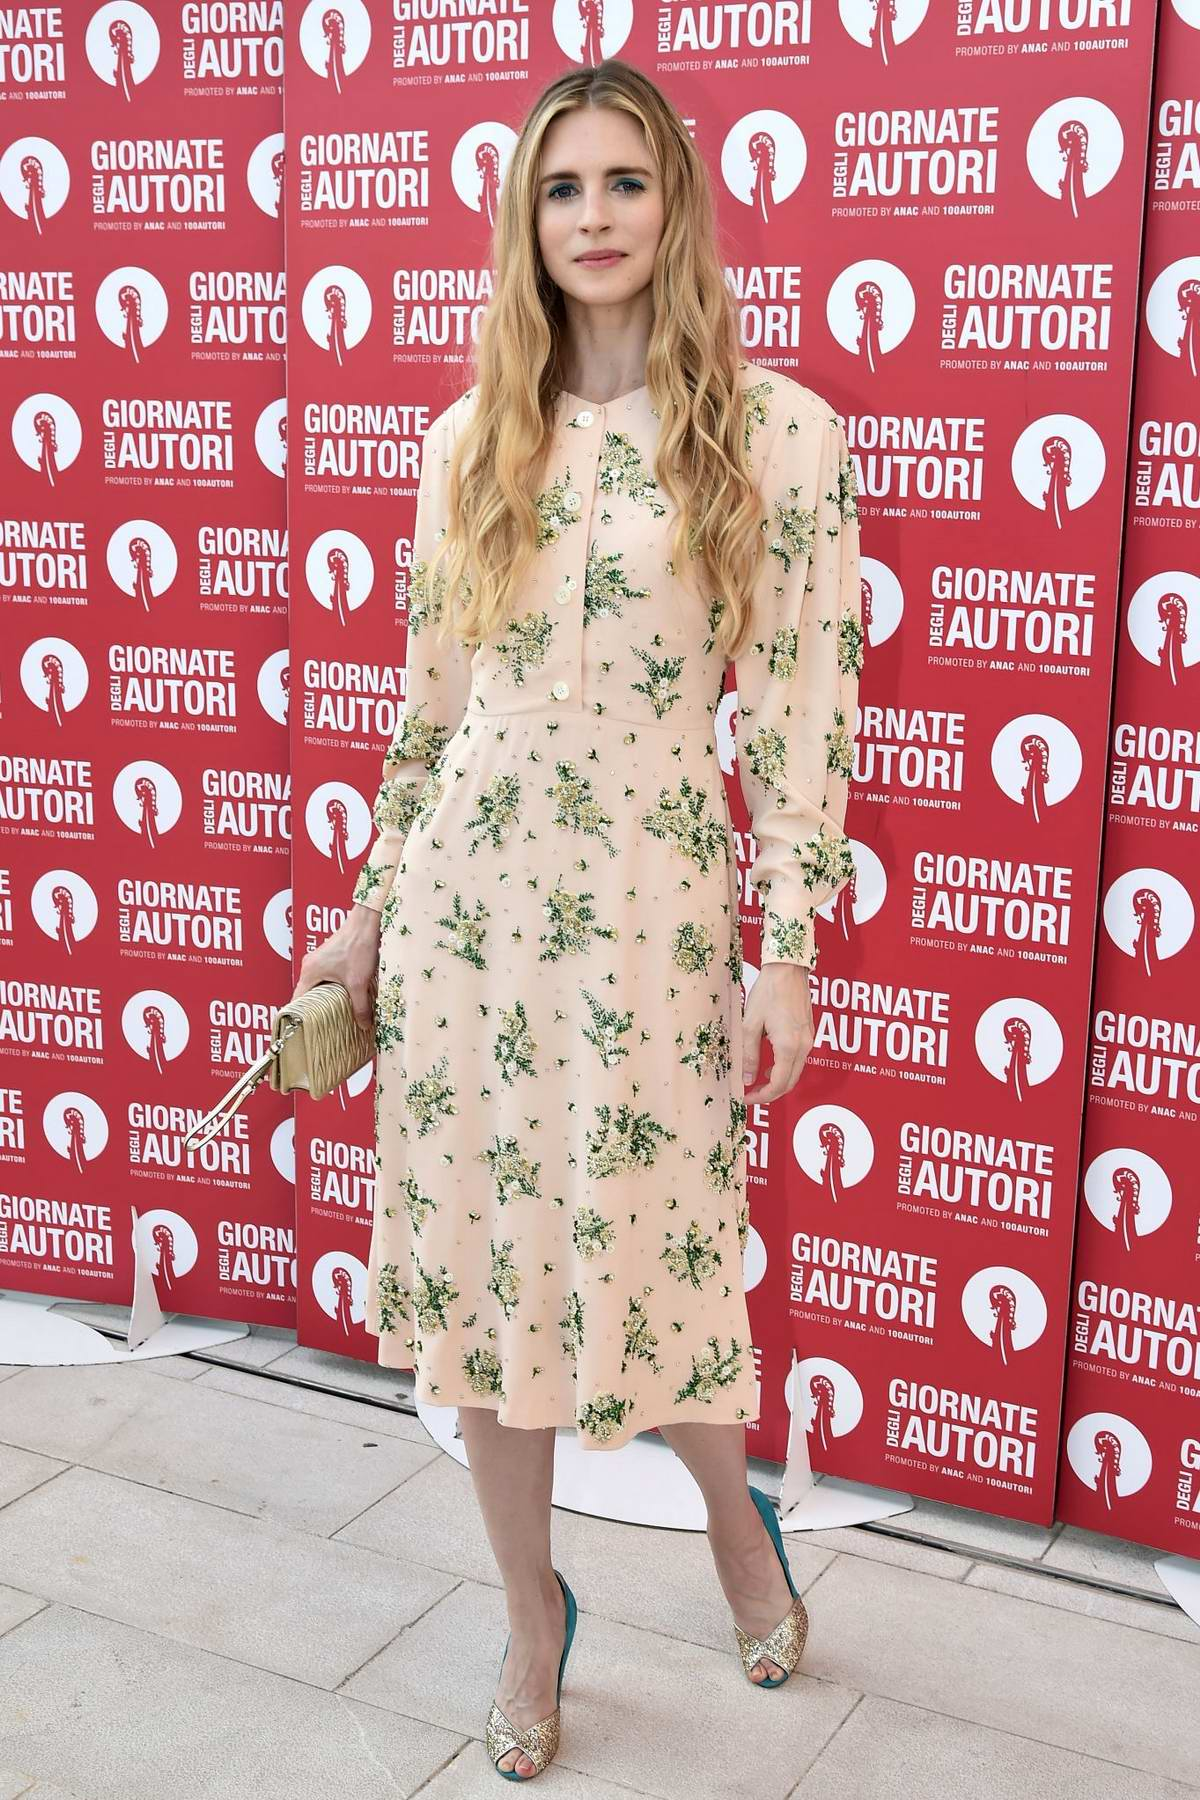 Brit Marling attends the Miu Miu Photocall during the 76th Venice Film Festival at Sala Volpi in Venice, Italy